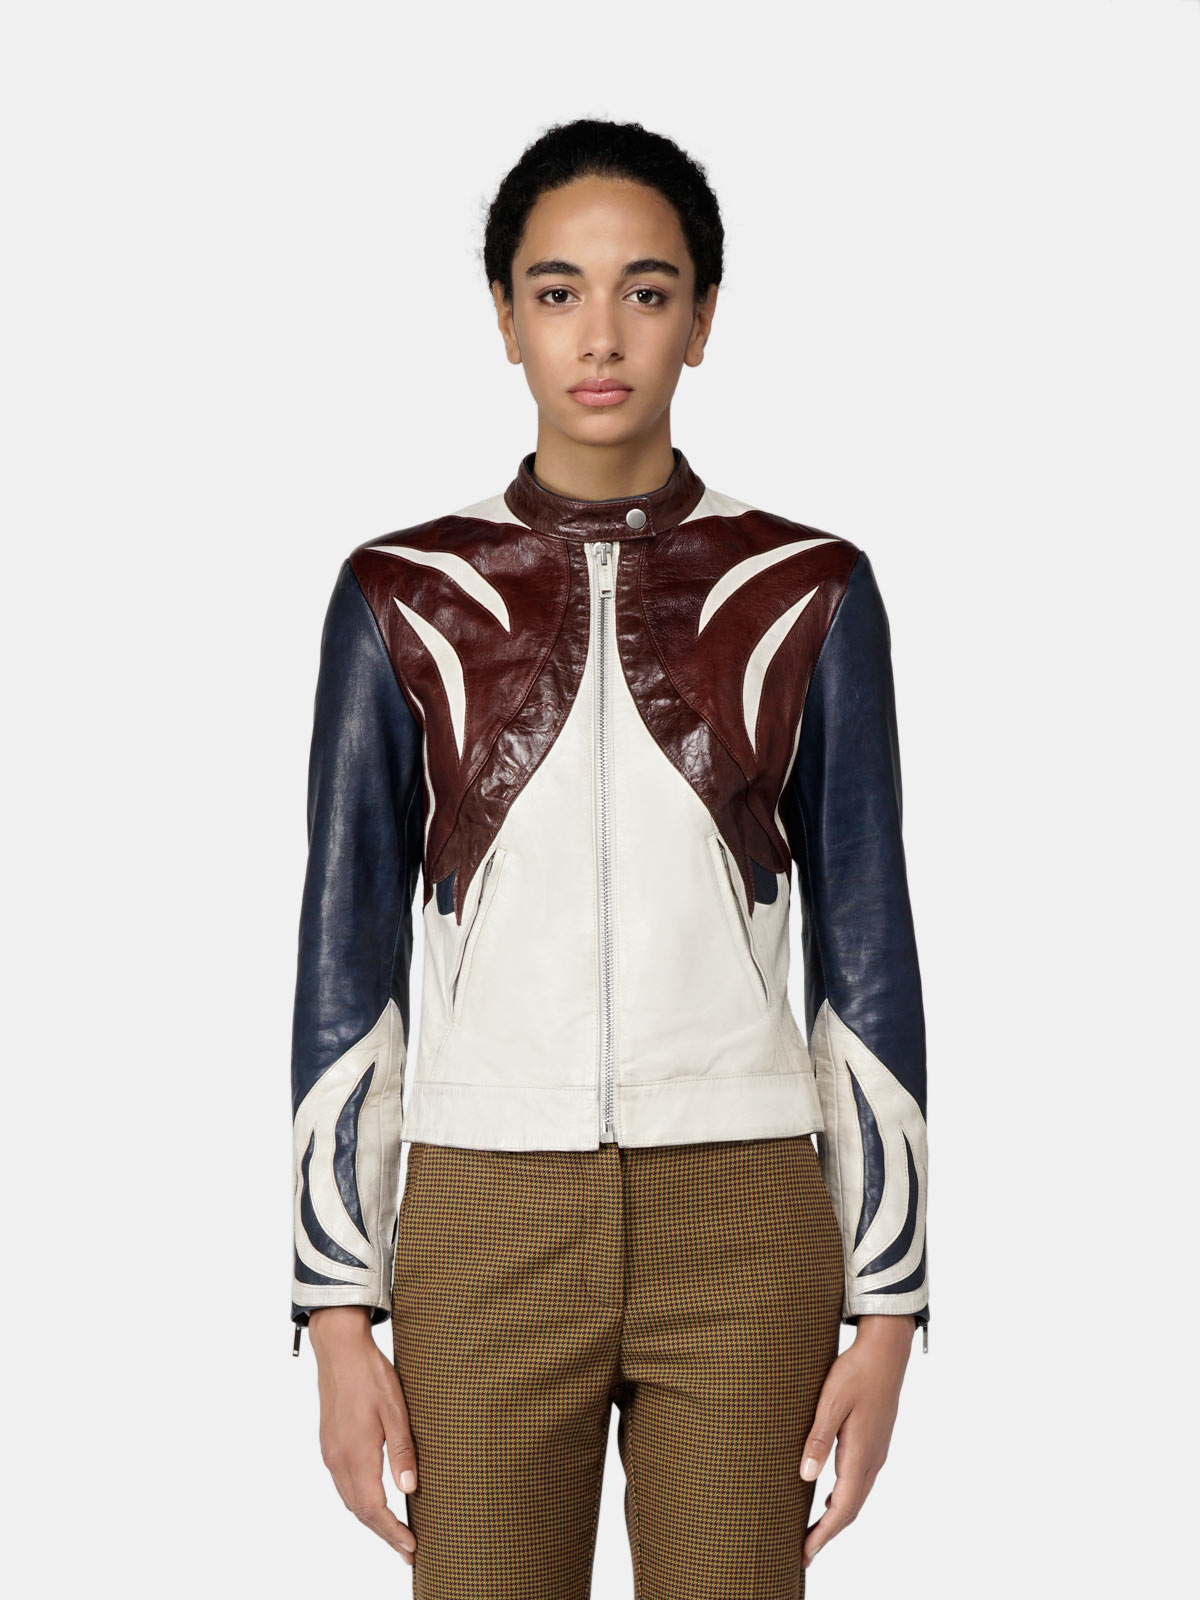 Golden Goose - Ashasa racer jacket in multicolour vegetable-tanned nappa leather in